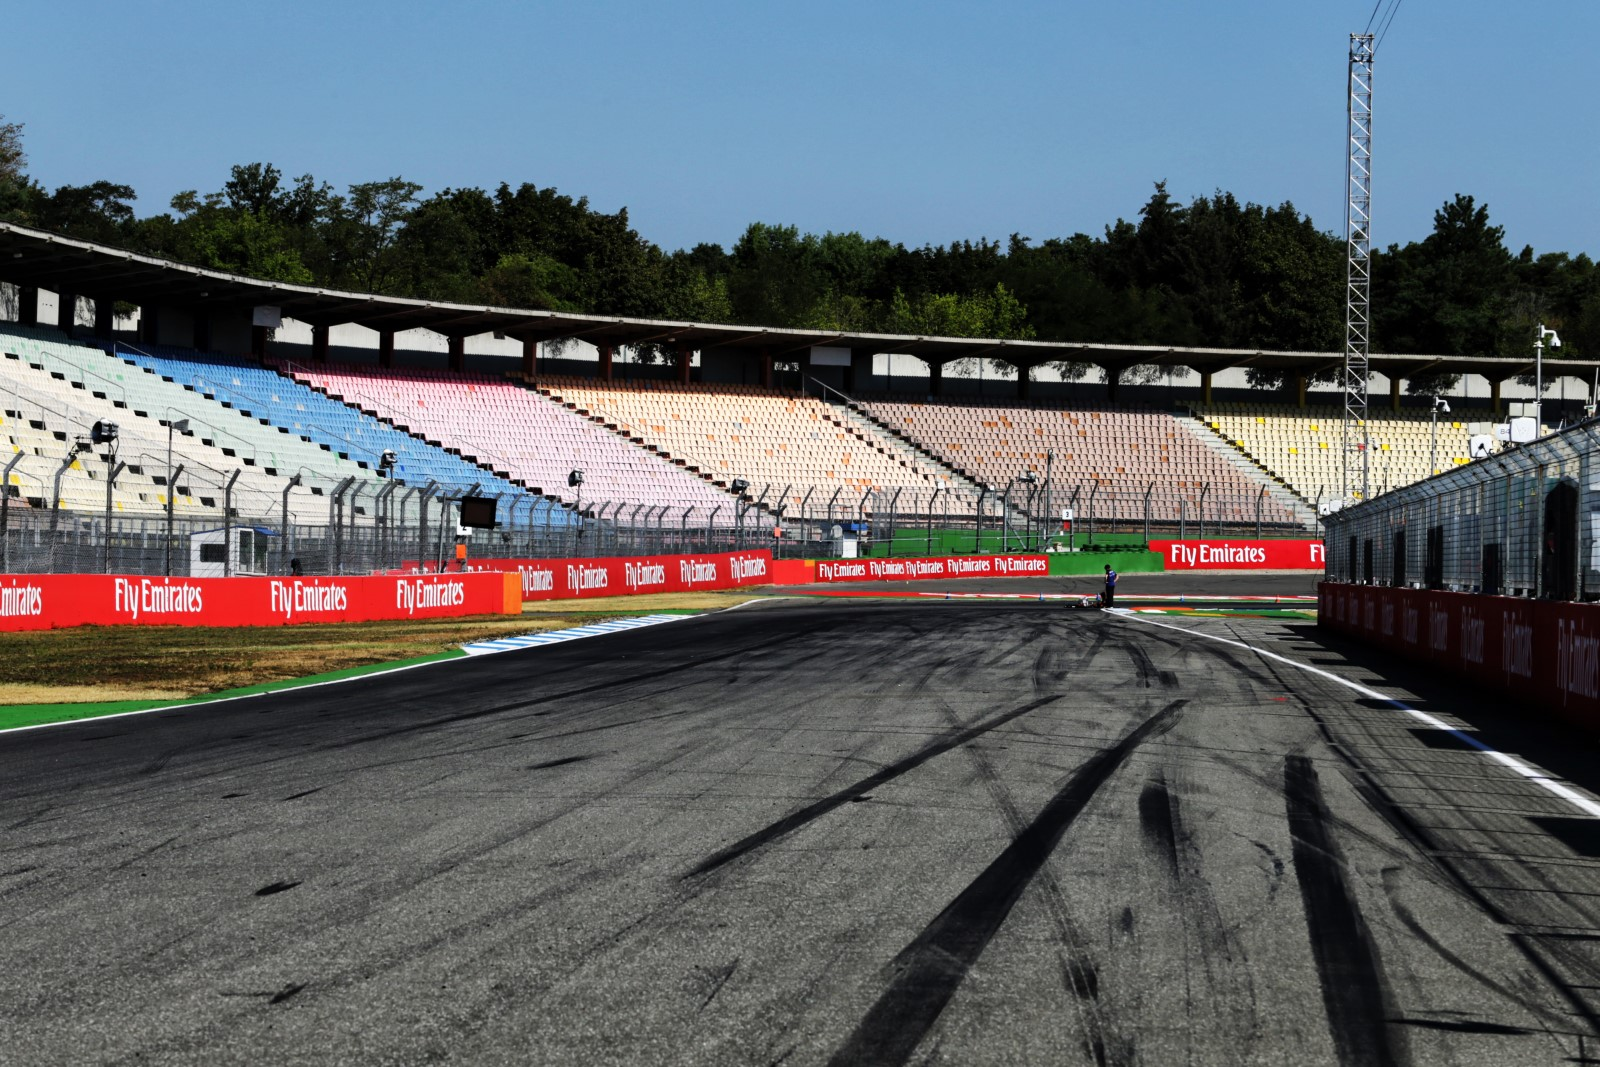 Montreal Formula 1 cancelled due to COVID-19